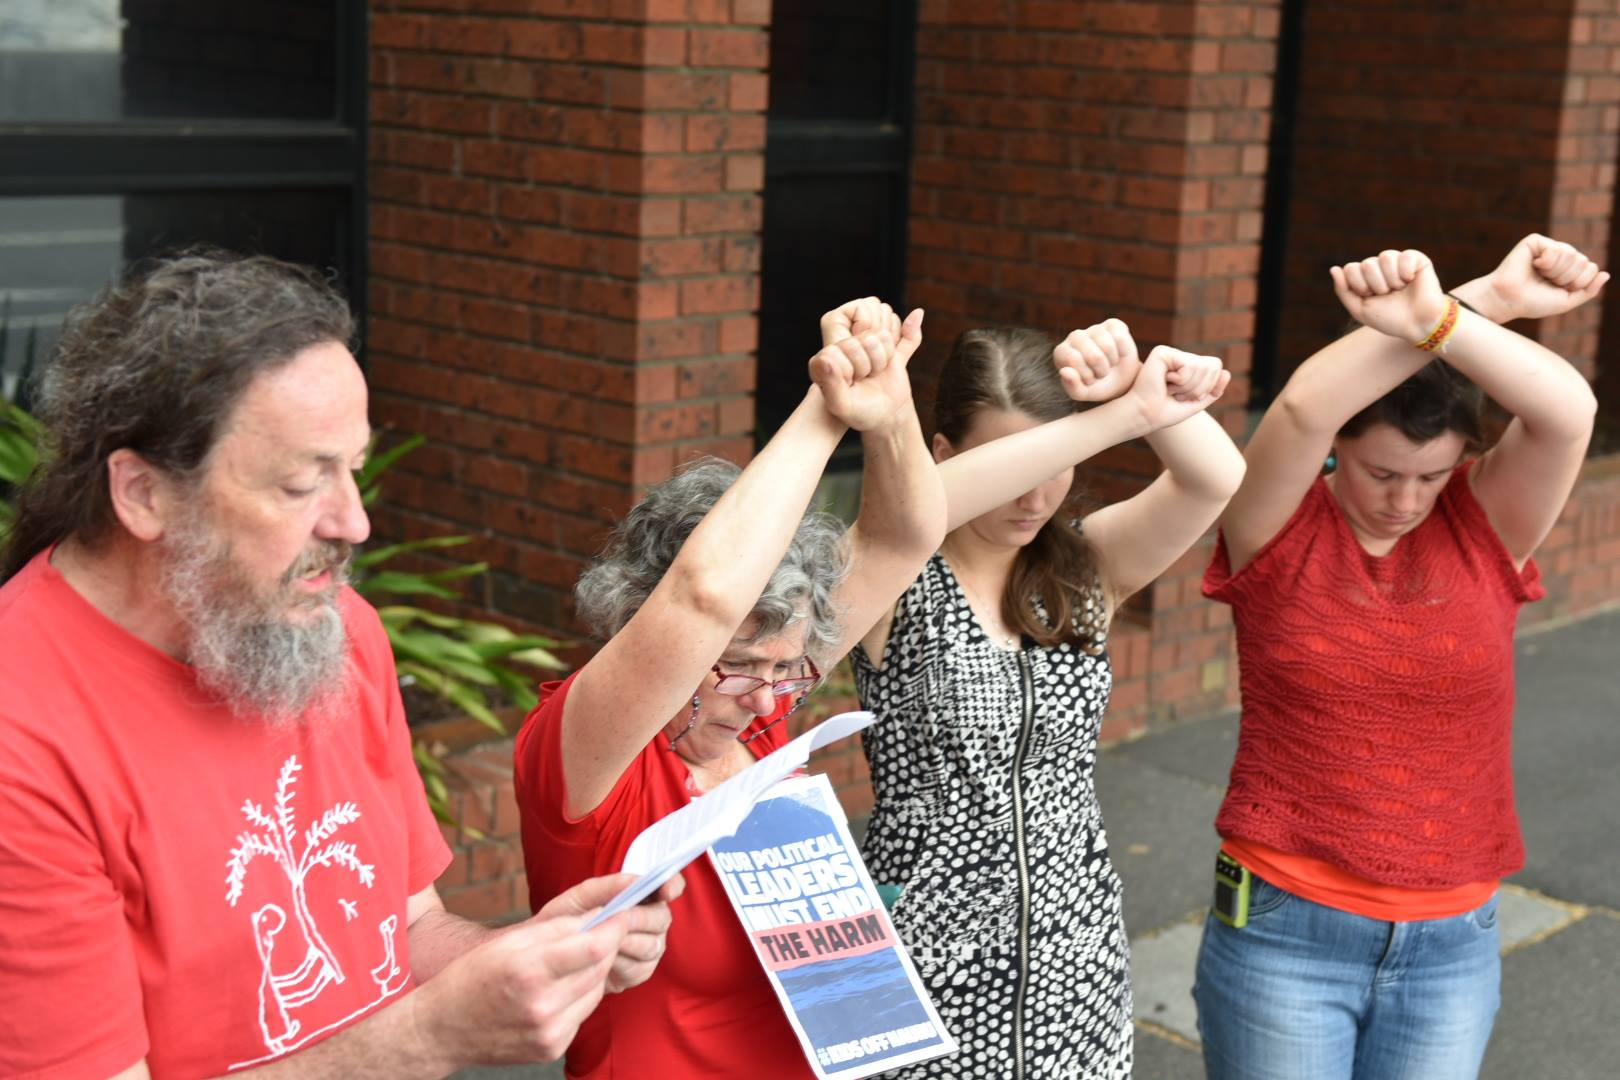 scott ryan's office Aug 2018 refugee Christian sit in moonee ponds love makes a way end child detention #kidsoffnauru #kidsoffalloff  peaceful non-violent resistance